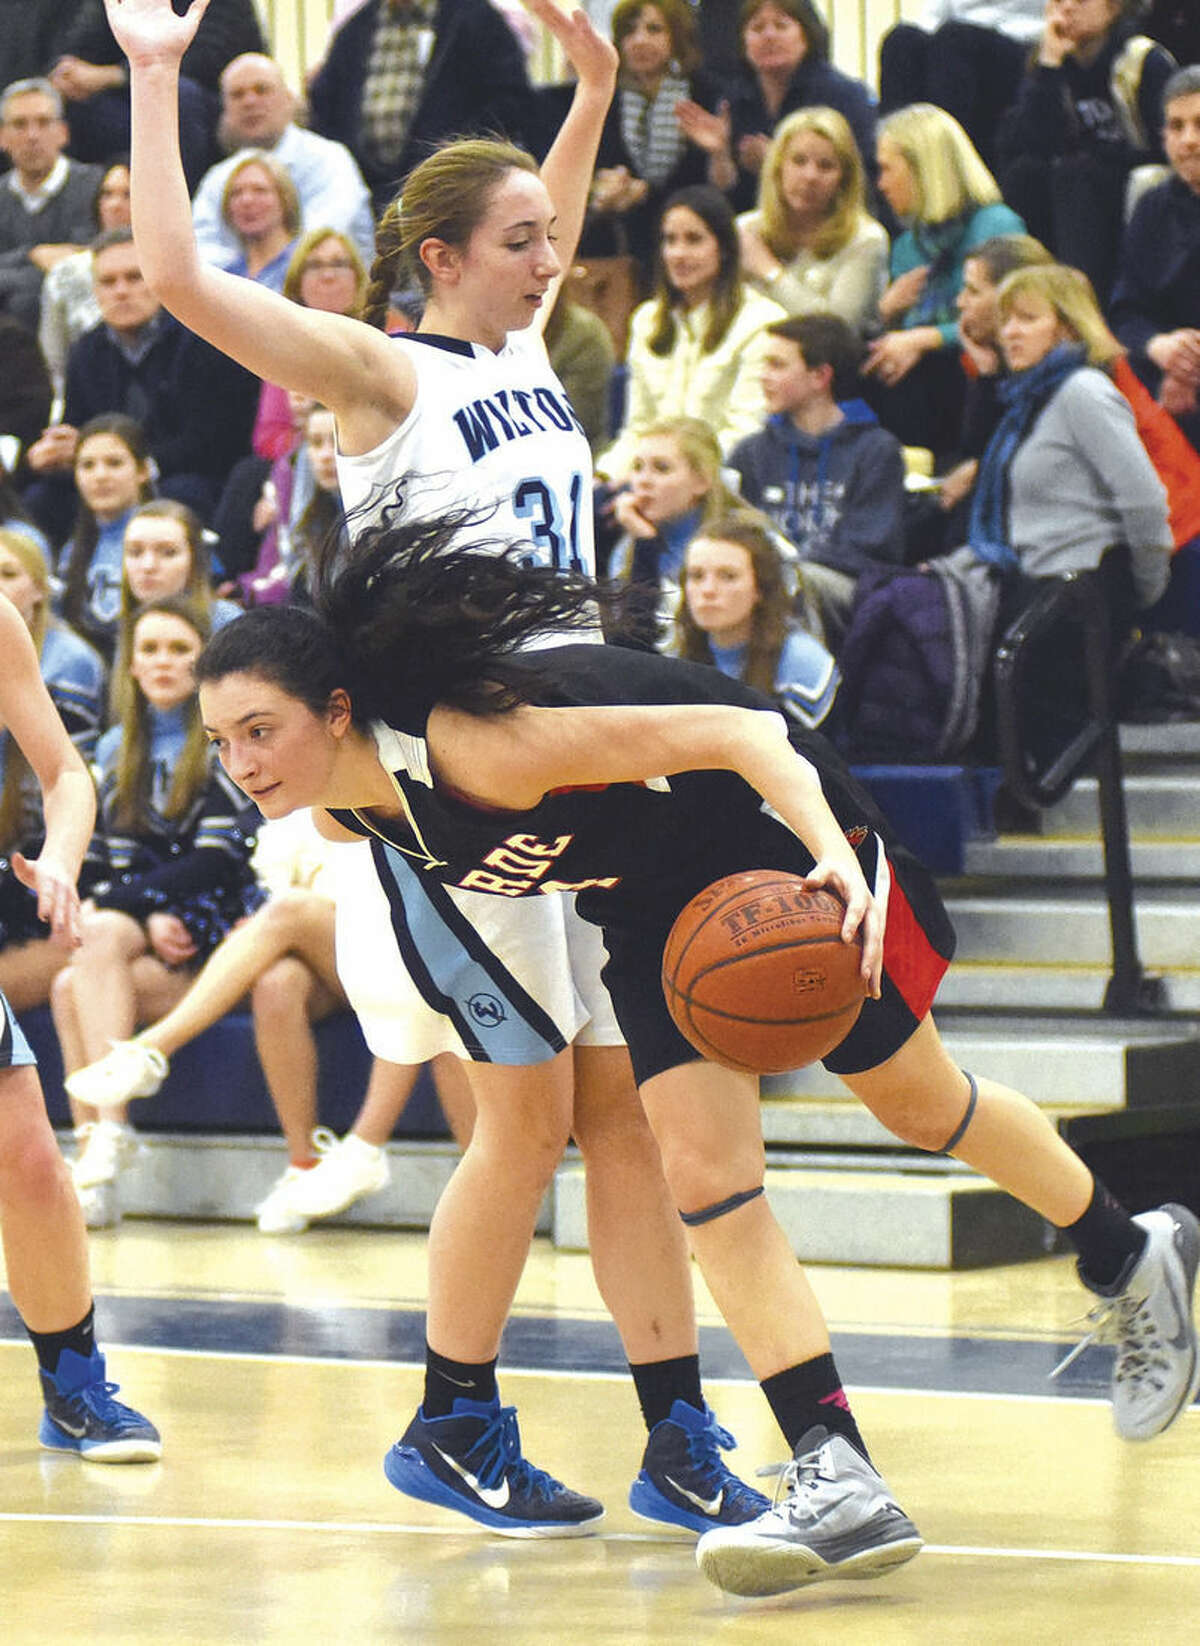 Hour photo/John Nash Wilton's Christina Holmgren, top, defends atop the press as Fairfield Warde guard Lejla Markovic reverses direction during Wednesday's FCIAC regular season finale at the Zeoli Field House in Wilton.